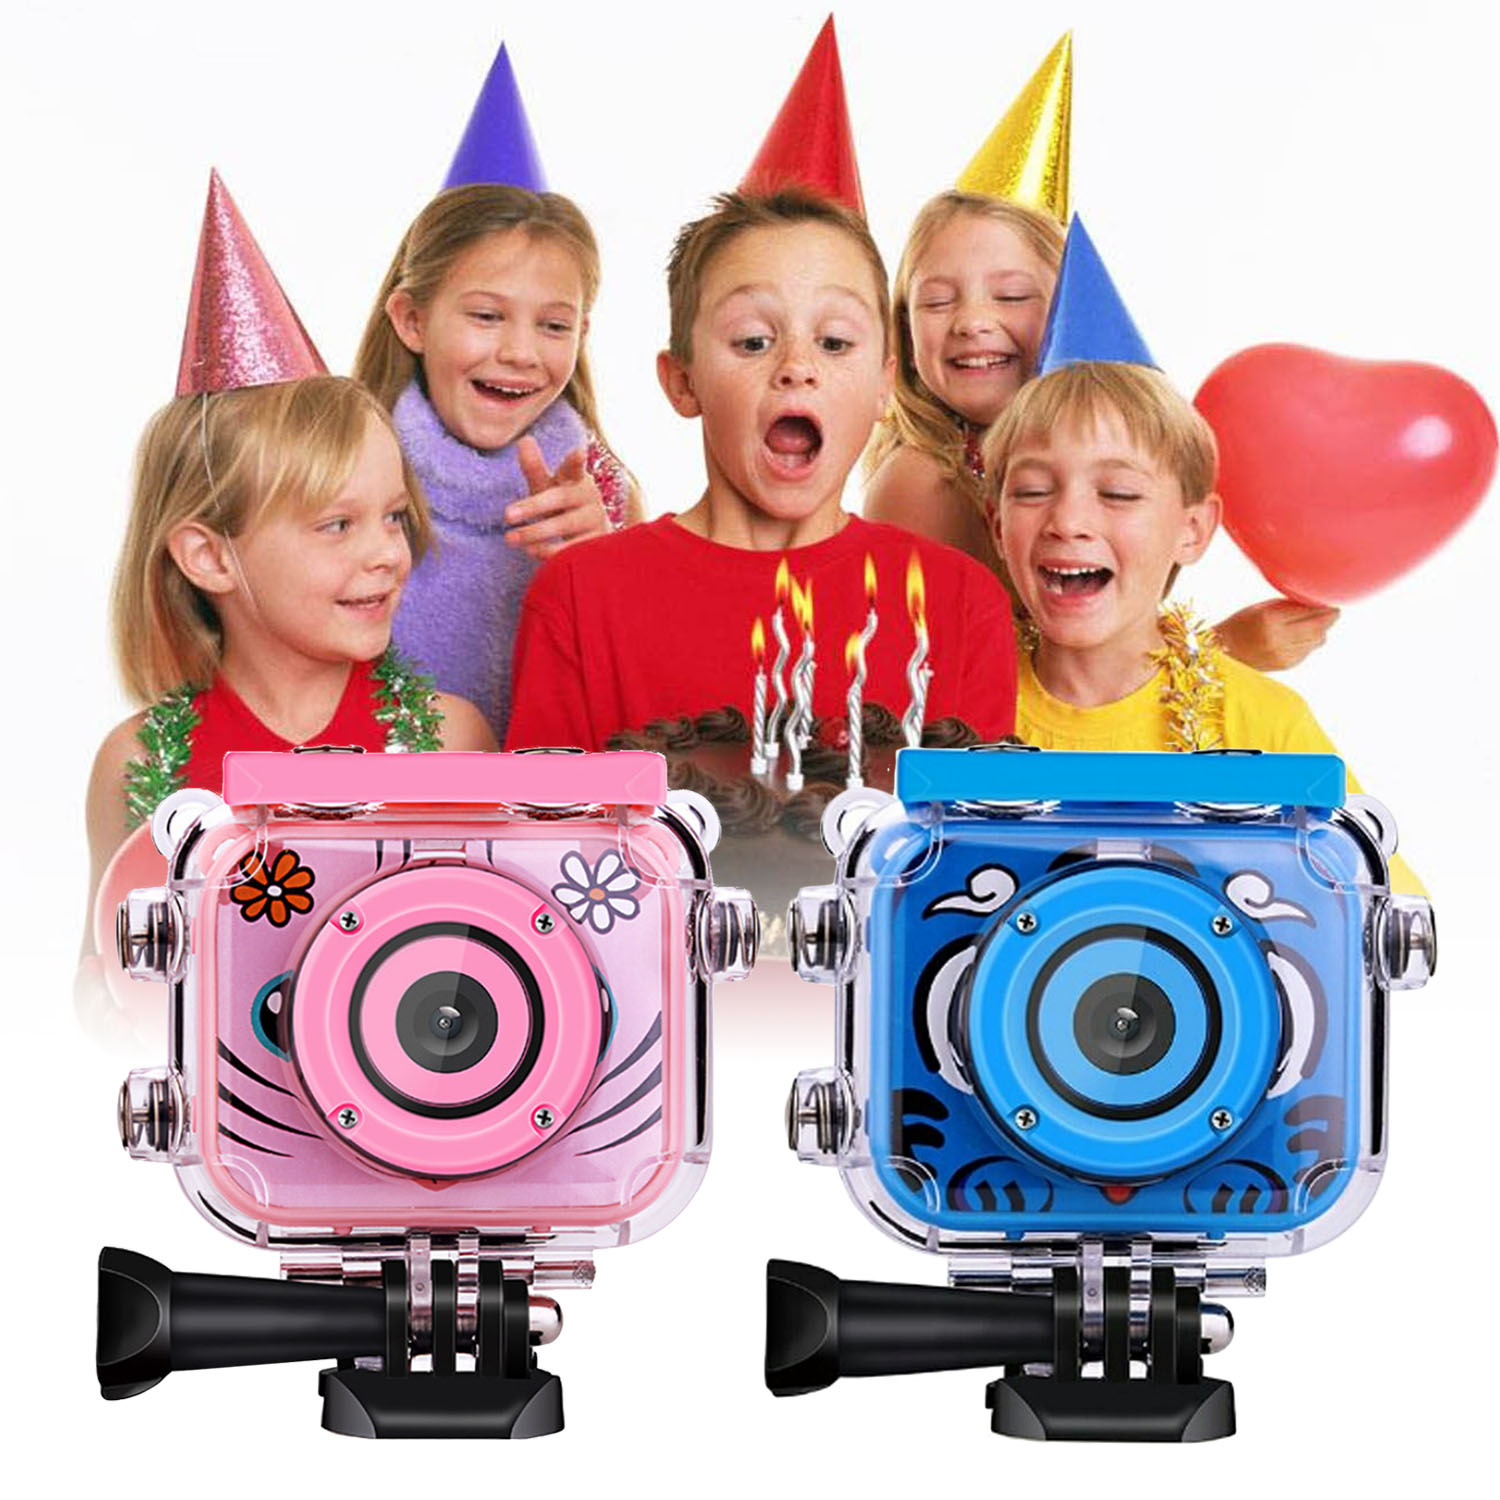 Gosear Kids USB Rechargeable 1080P HD Waterproof Action Digital Camera with 2.0inch LCD Screen for Birthday Festival Toy Gift image